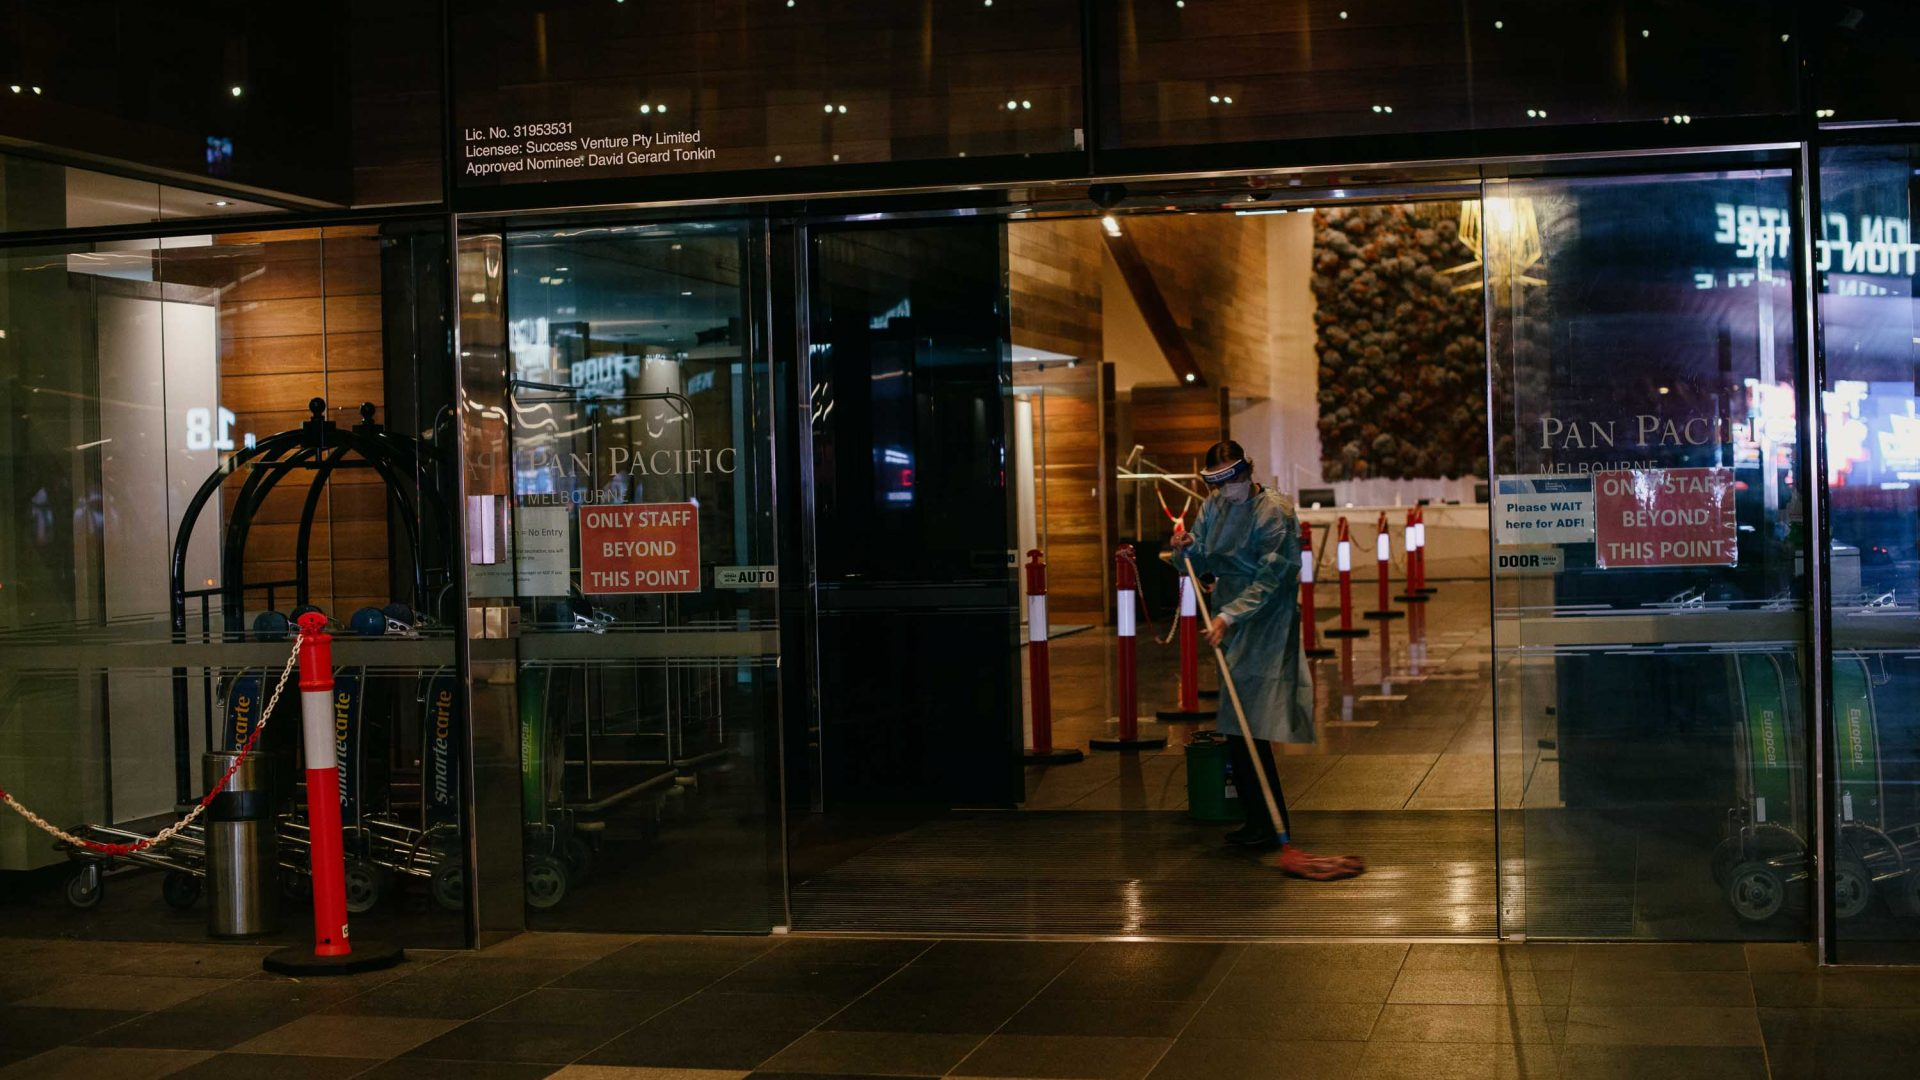 Cleaners clean the entry way of the hotel.